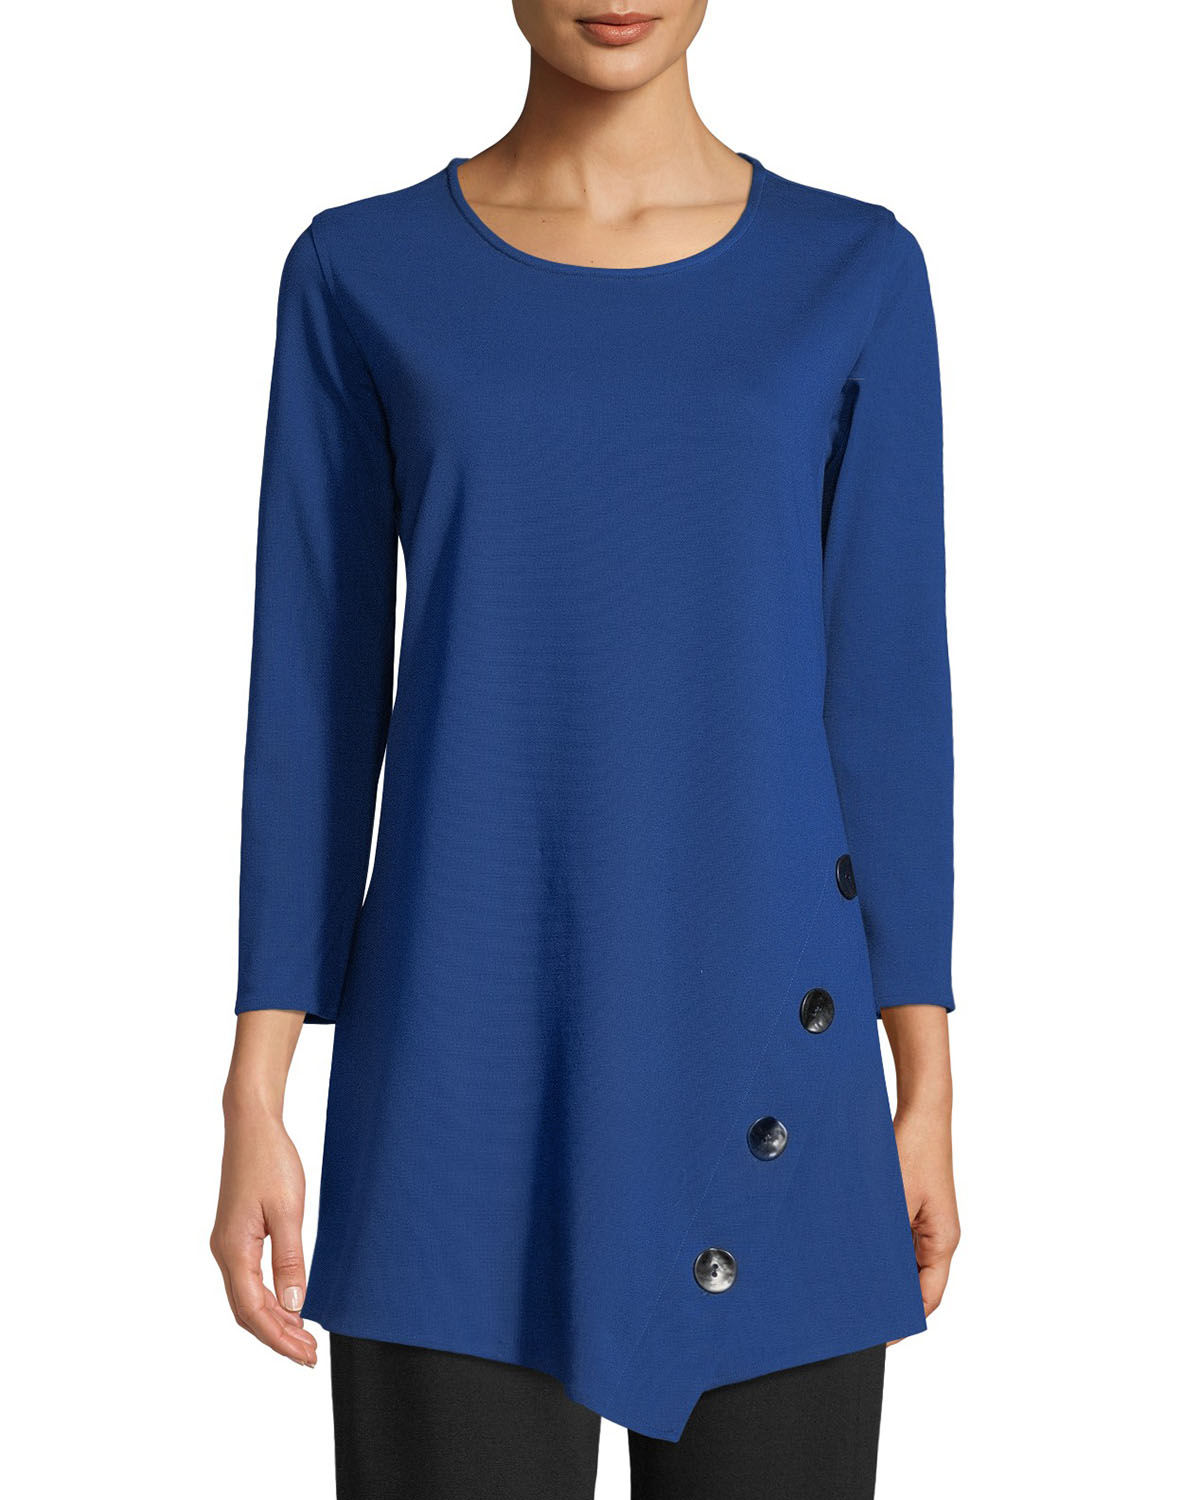 3/4-Sleeve Easy-Fit Ponte Luxe Tunic w/ Matte Metal Buttons, Plus Size